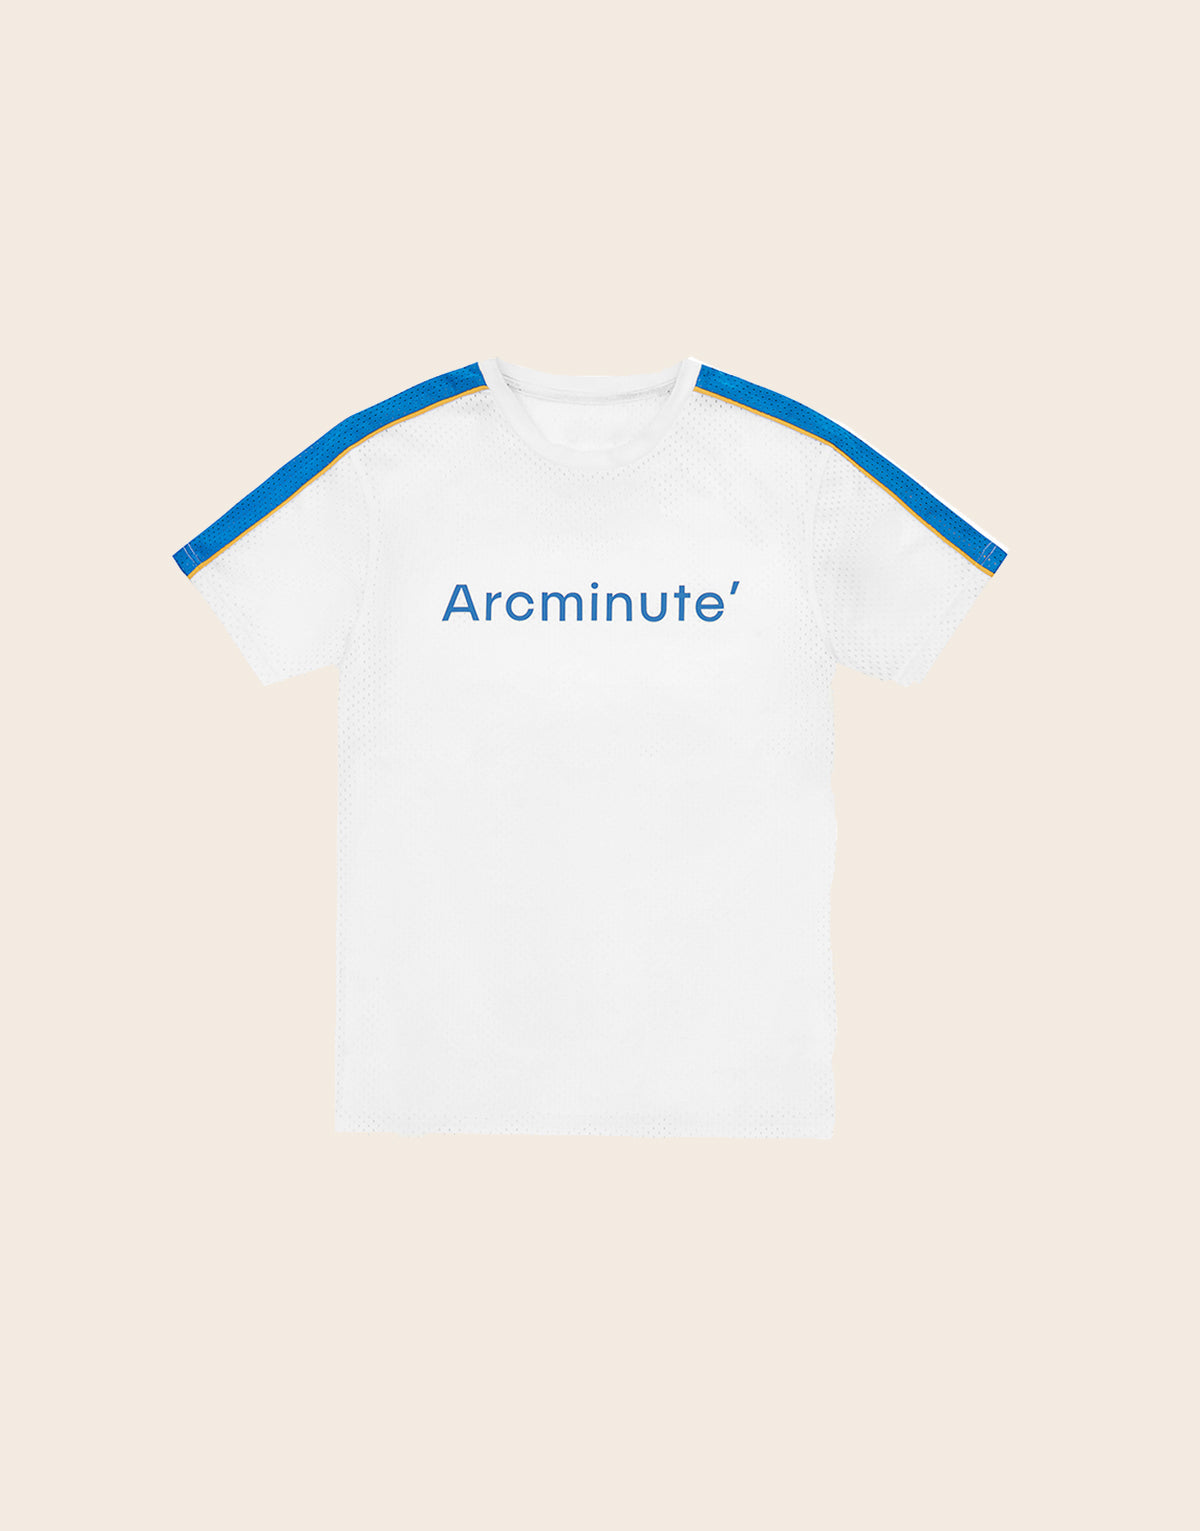 Wiles T-Shirt White & Blue - Arcminute